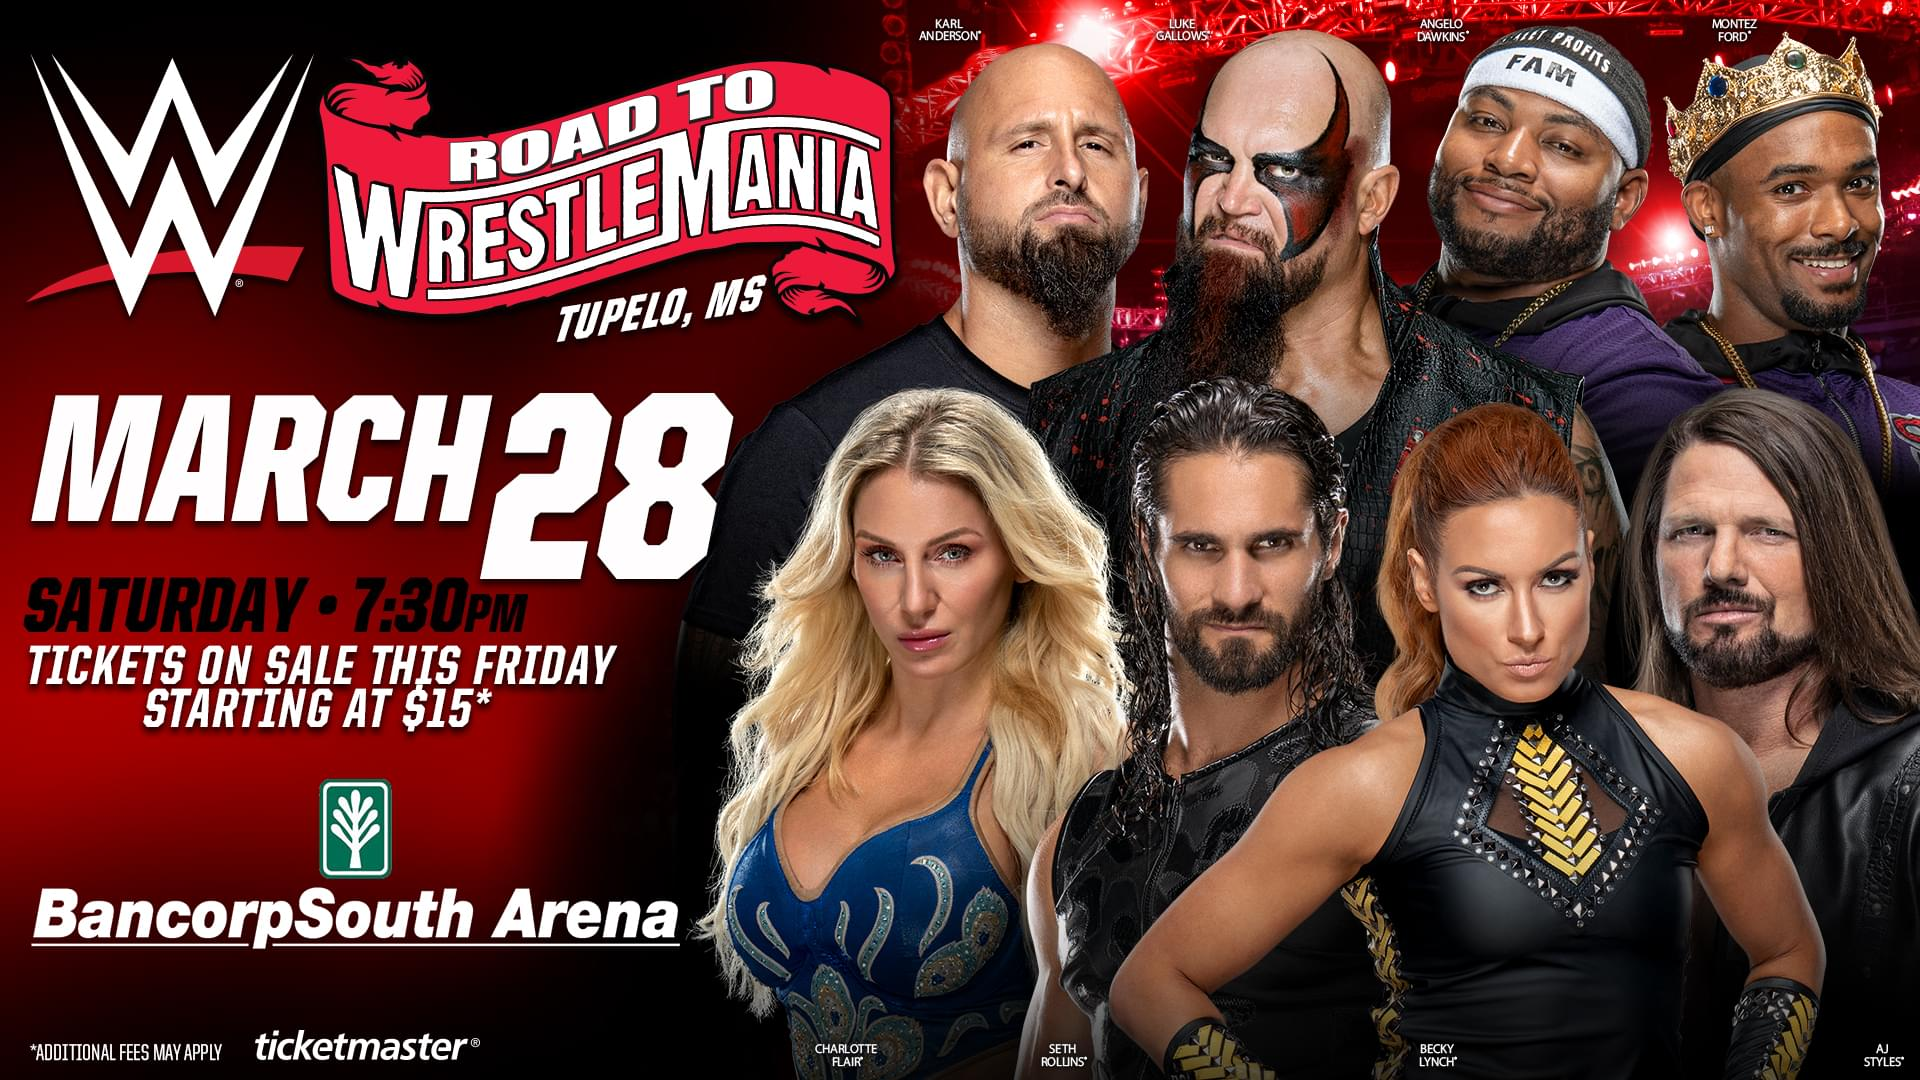 WWE Road to Wrestle Mania-LIVE at BancorpSouth Arena